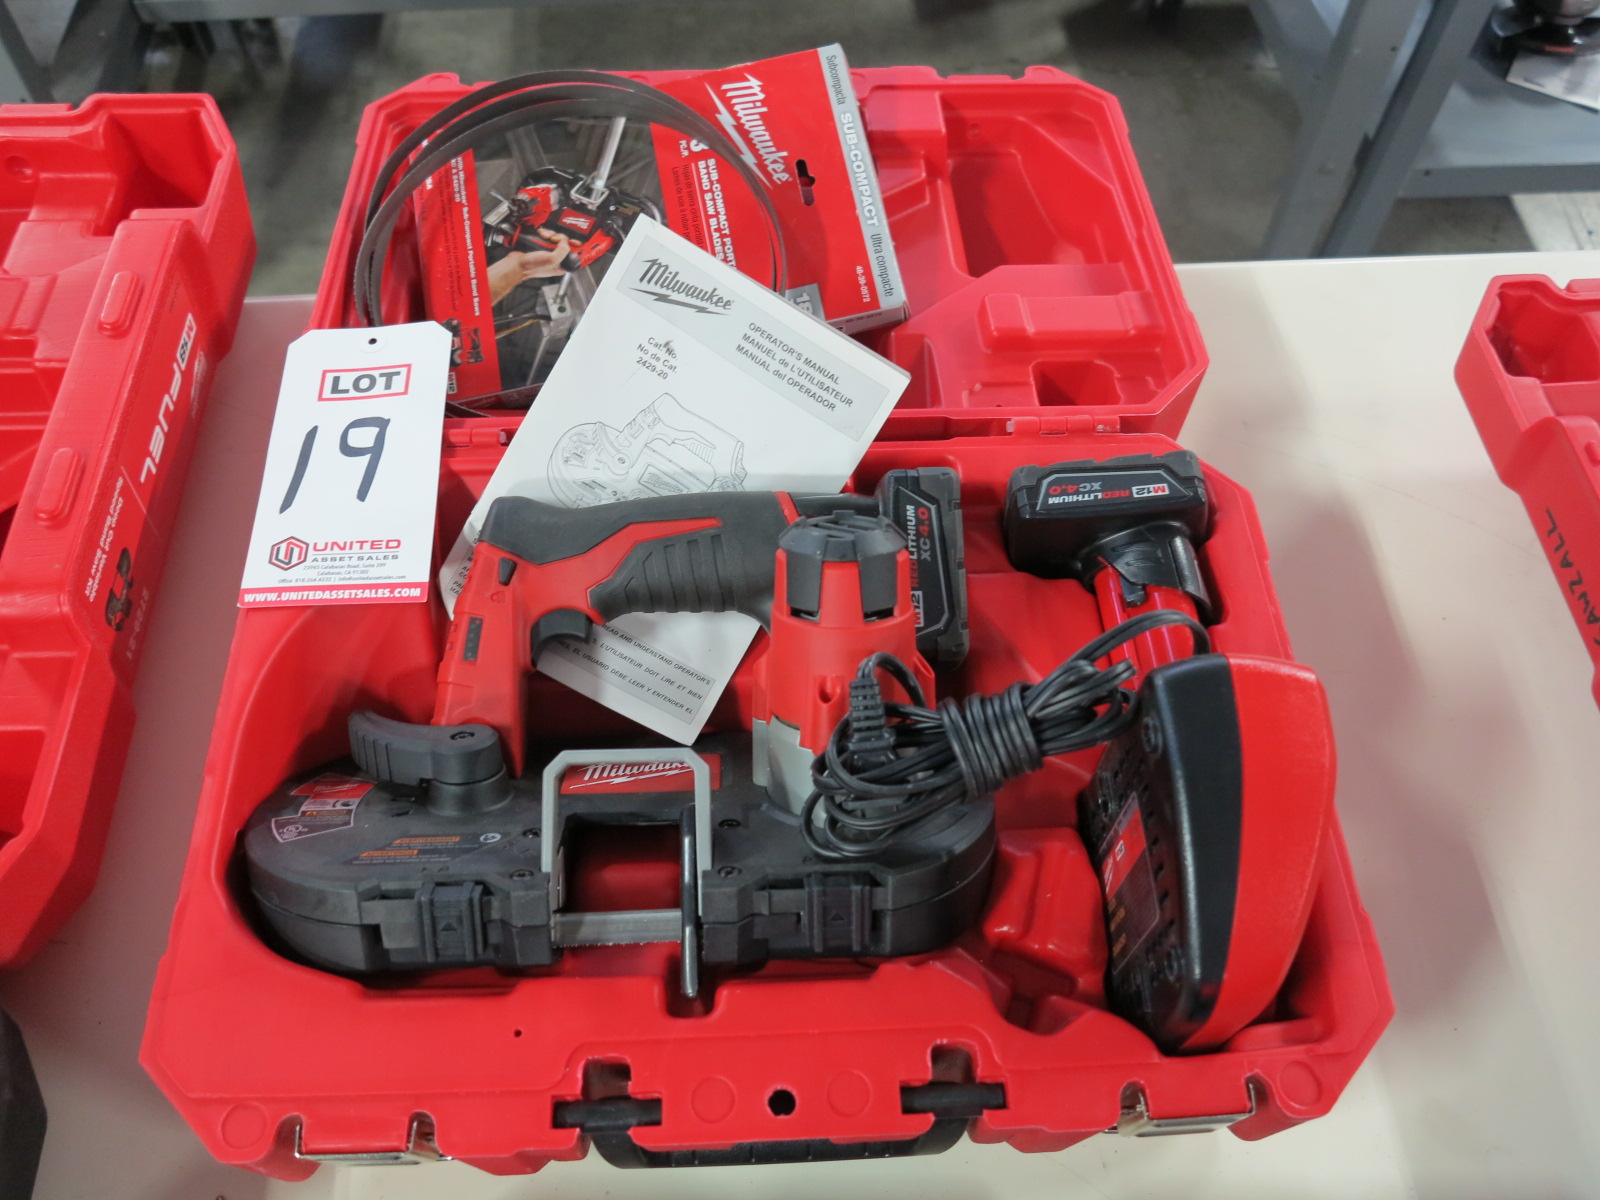 Lot 19 - MILWAUKEE M12 BAND SAW, W/ (2) BATTERIES, CHARGER, CASE, EXTRA BLADES, CAT. NO. 2429-20, 12V